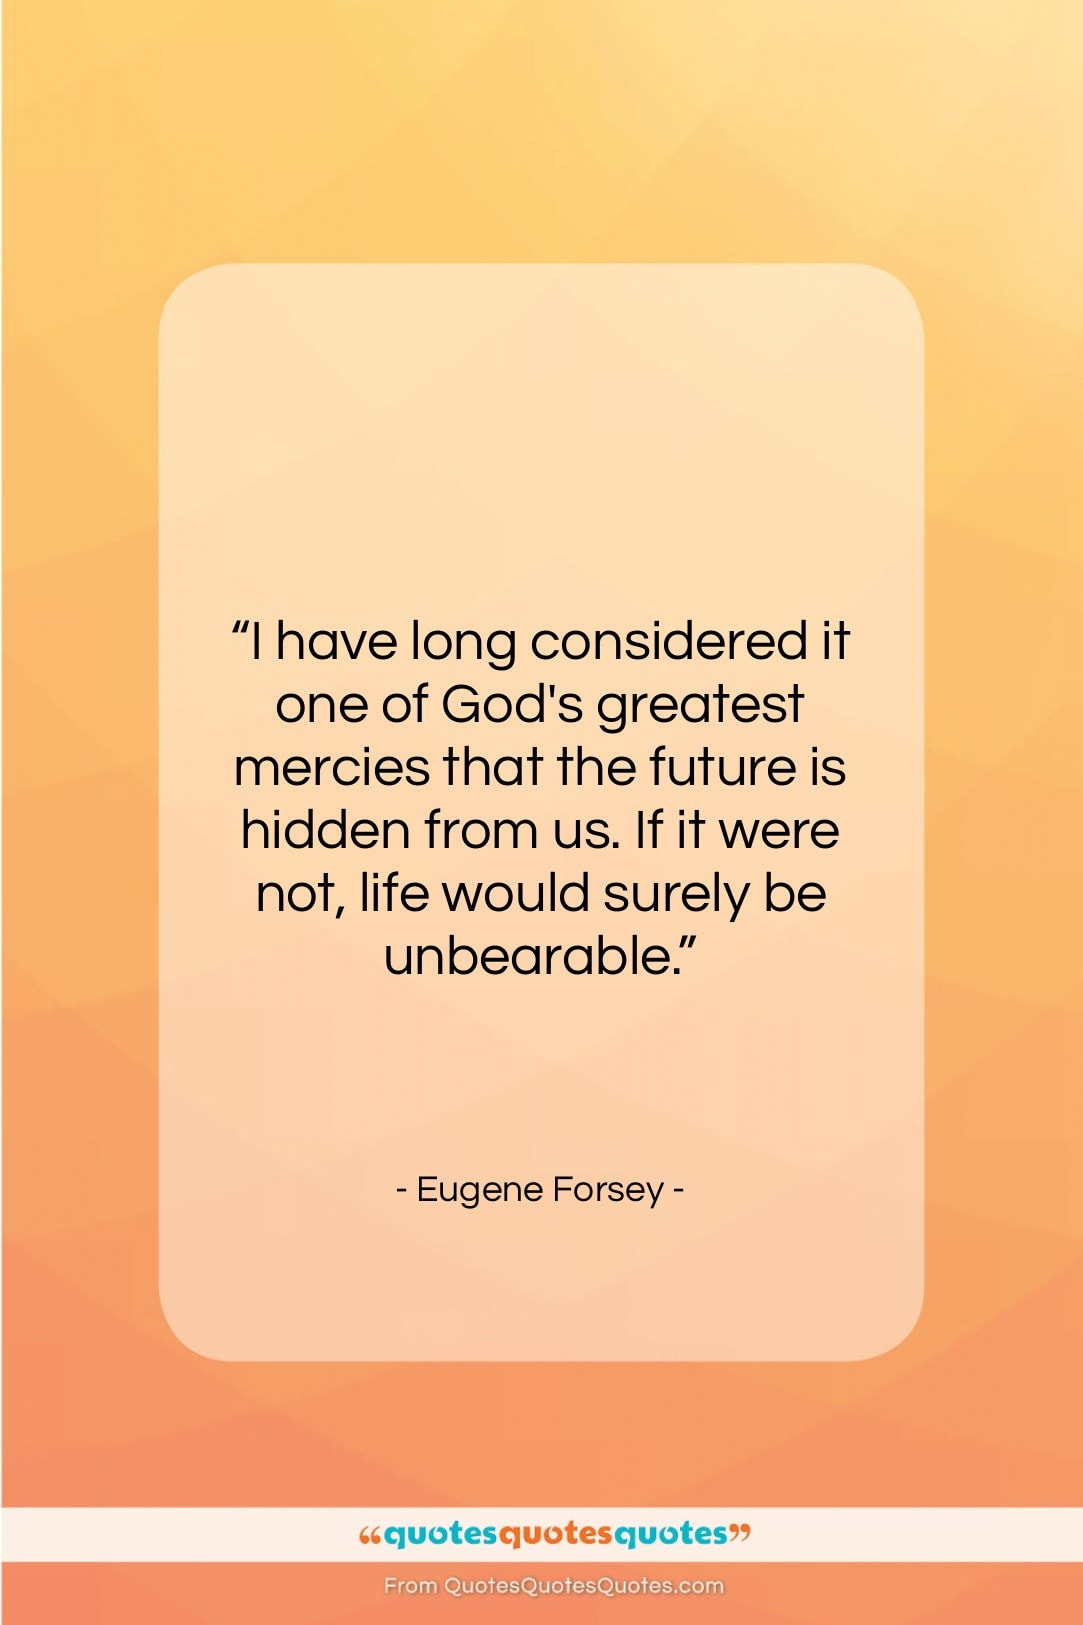 """Eugene Forsey quote: """"I have long considered it one of…""""- at QuotesQuotesQuotes.com"""